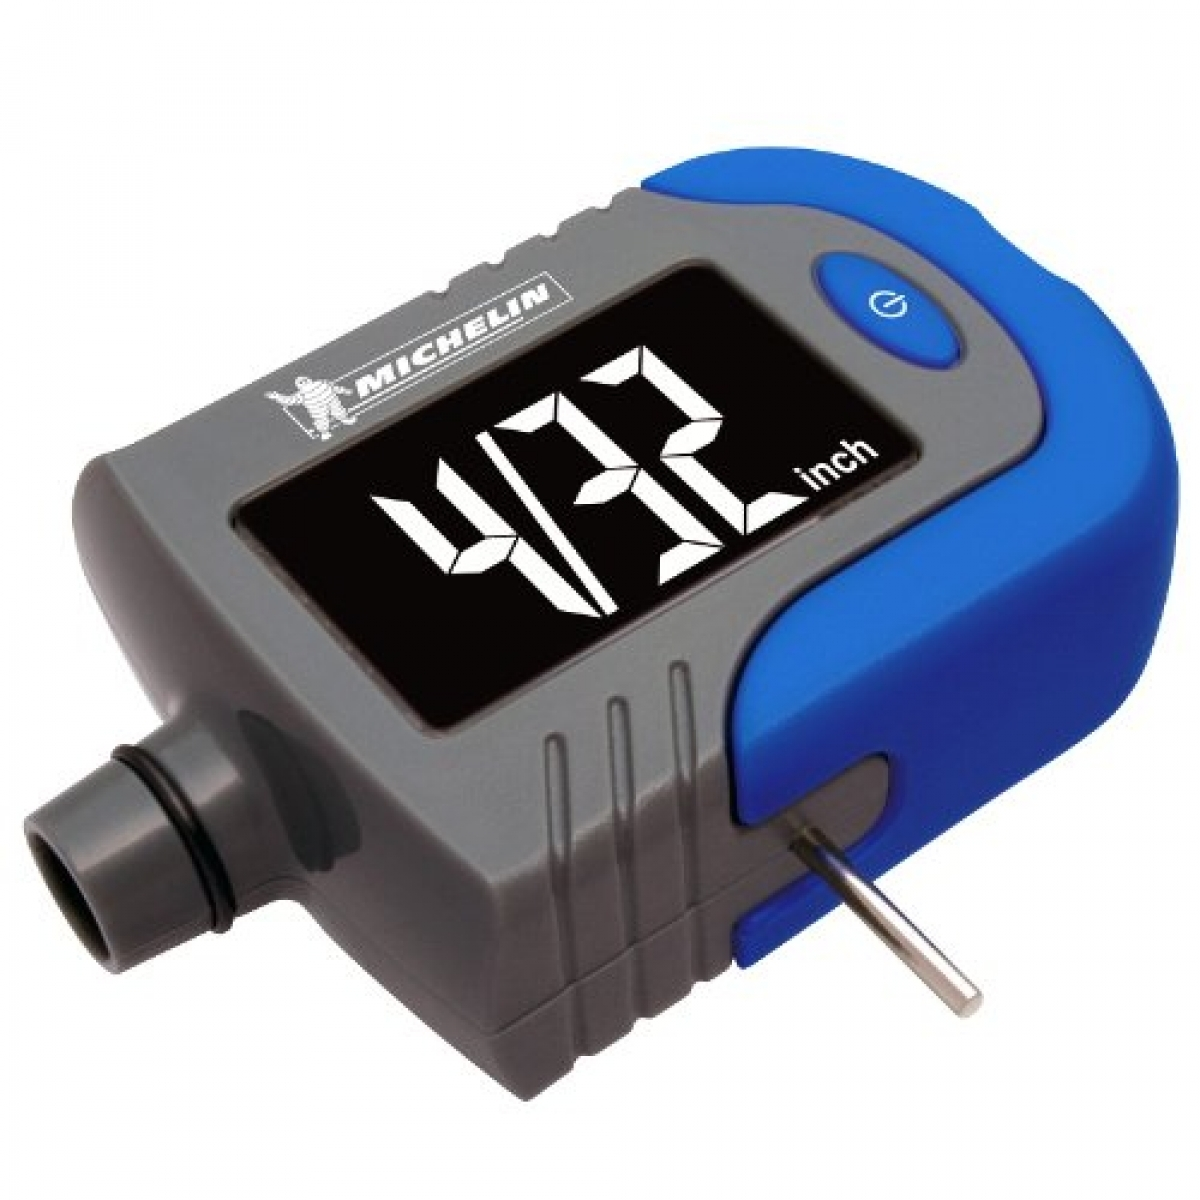 Tire air pressure level 2018 2019 2020 ford cars for Motor luxe tire pressure gauge 100 psi